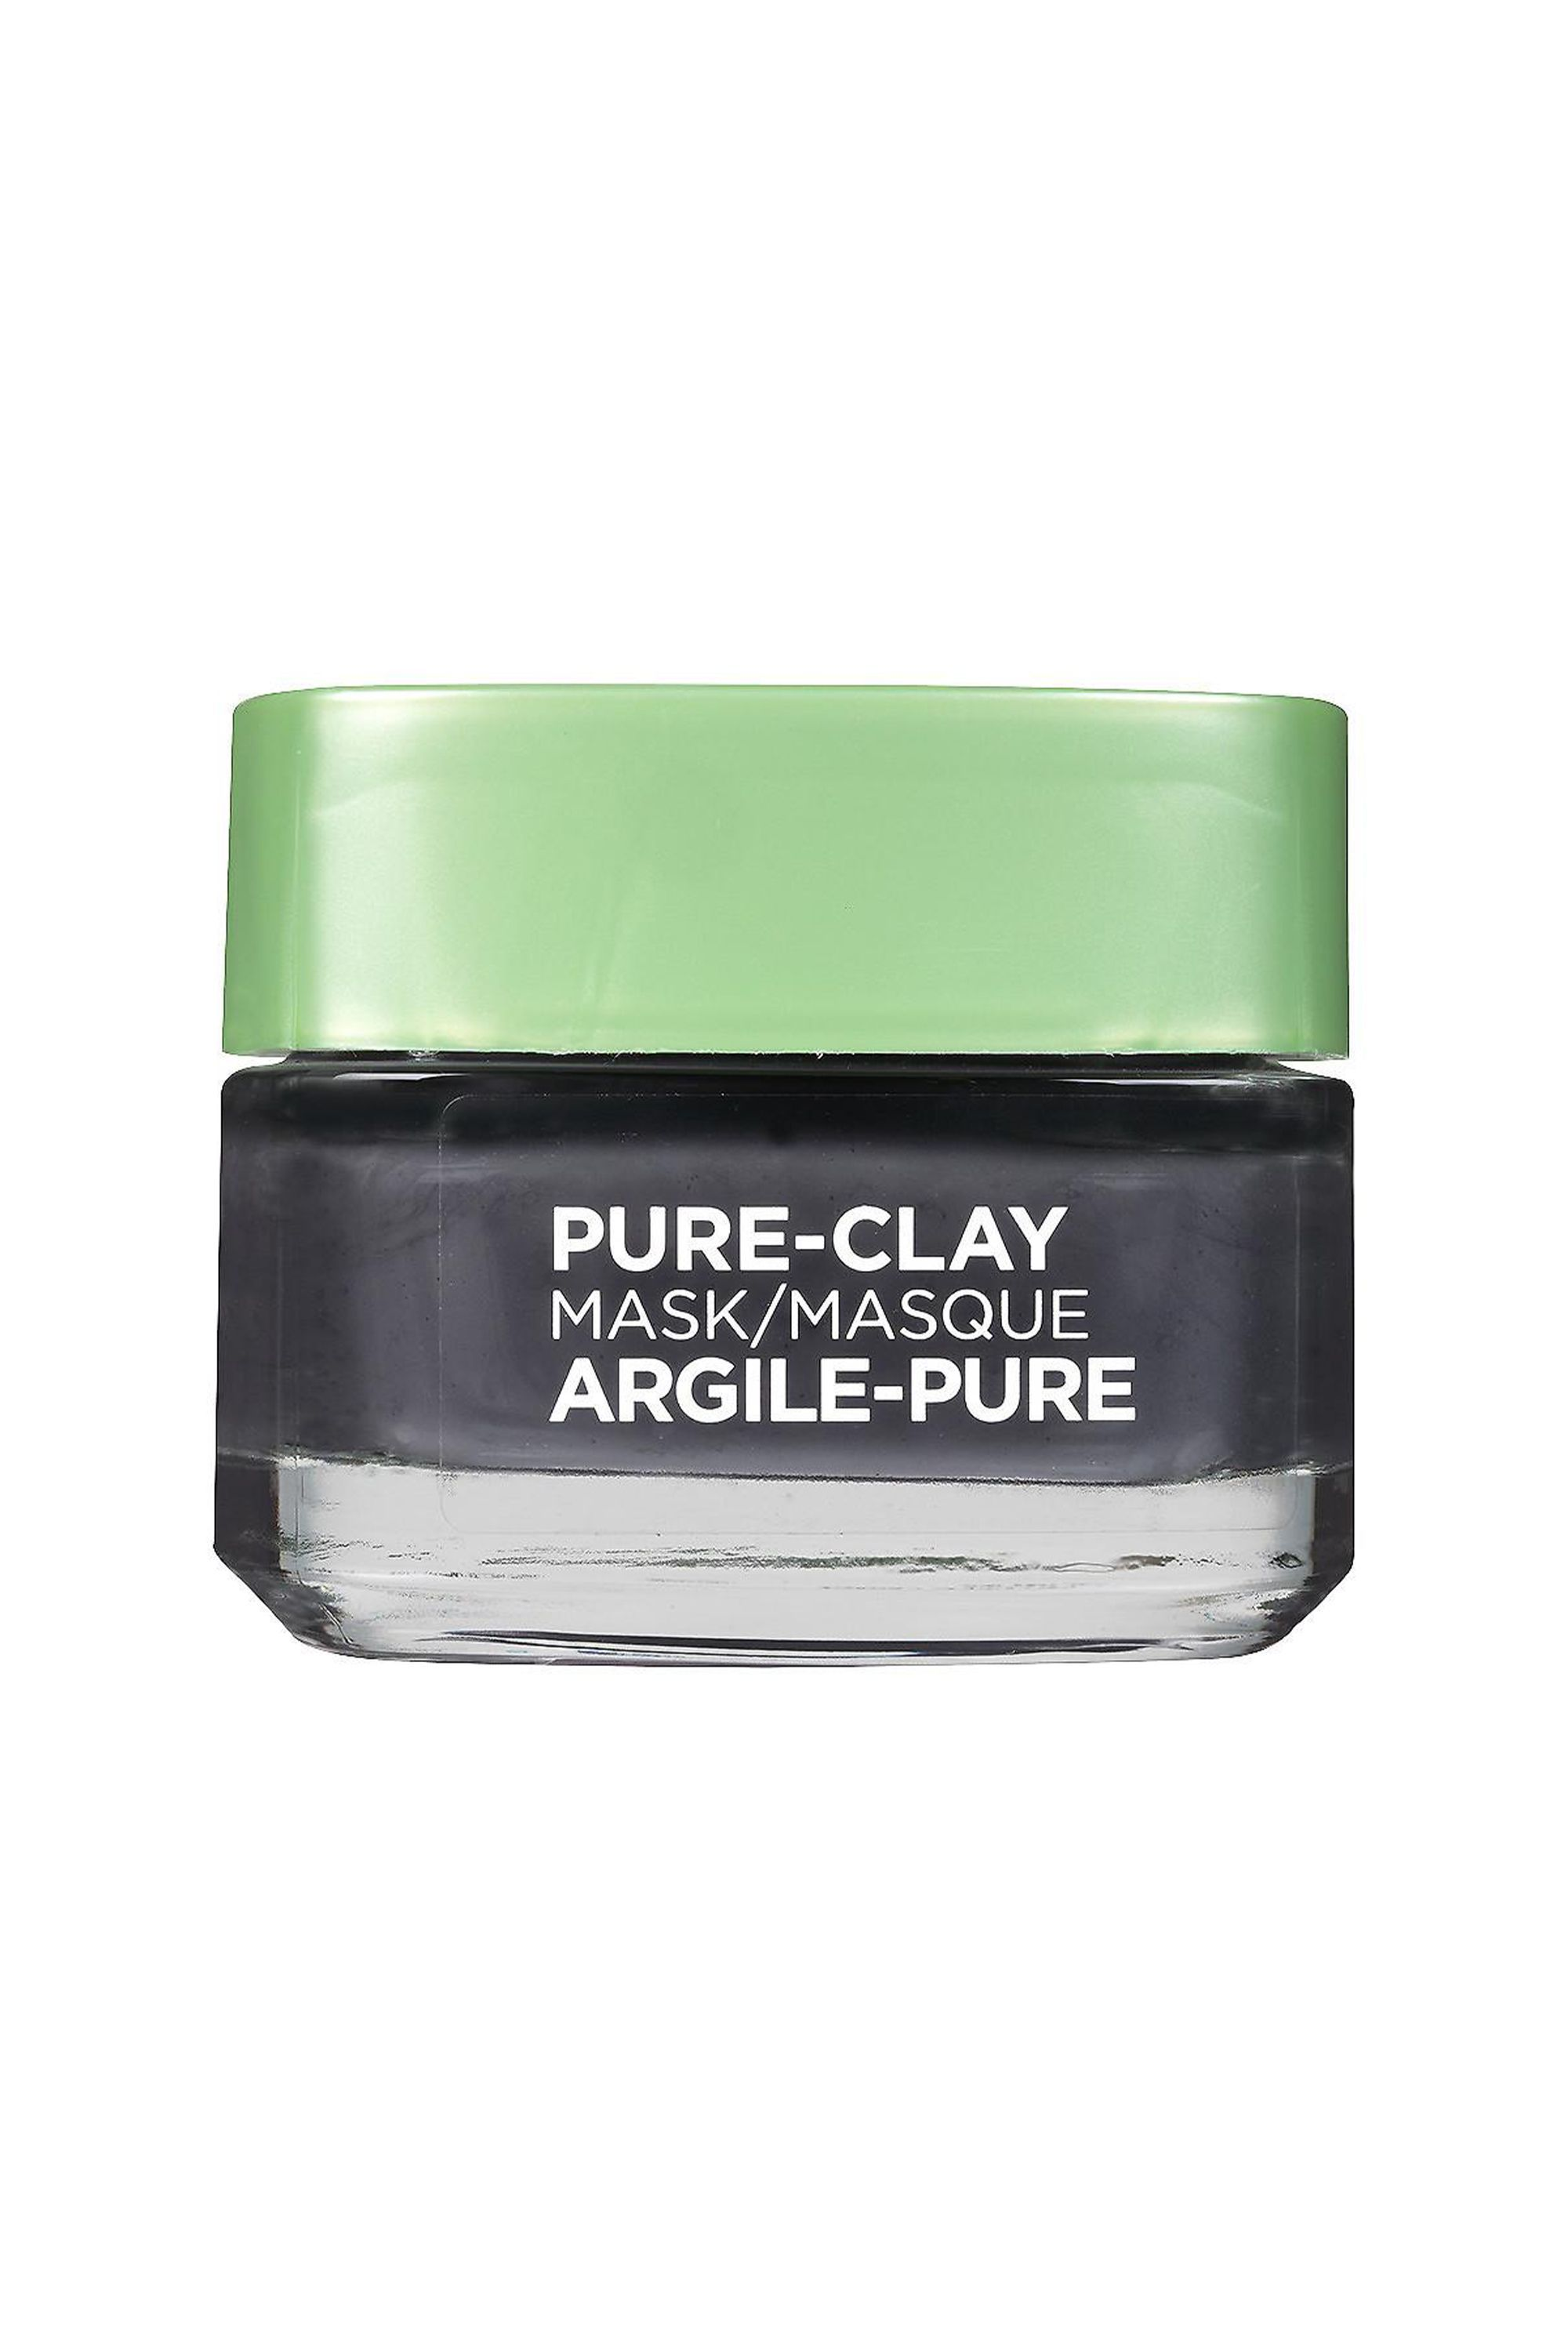 Pure-Clay Face Mask with Charcoal L'Oreal Paris amazon.com $8.84 SHOP NOW A drugstore steal! Look no further than your local beauty aisle for this ultimate detoxifying mask.